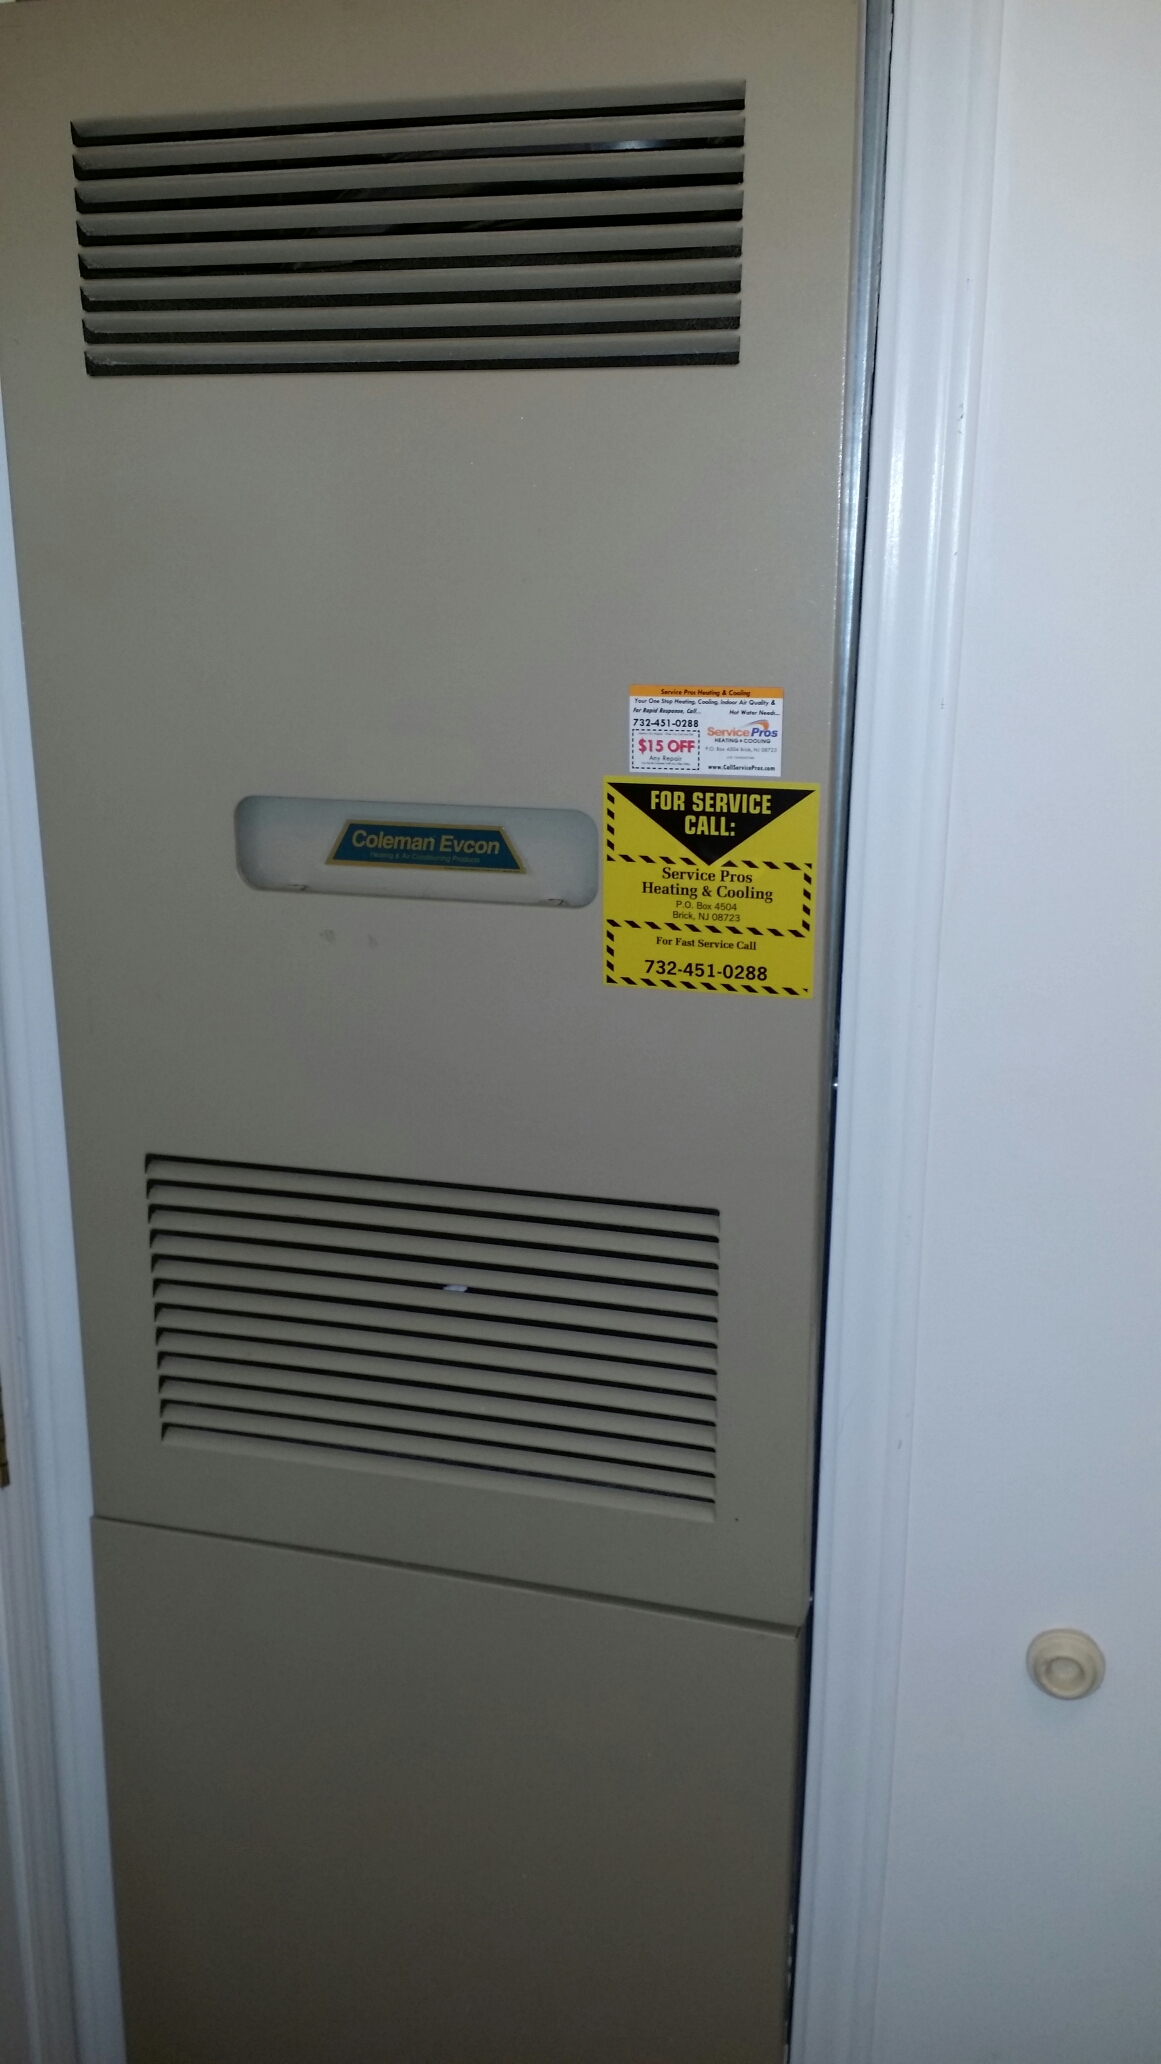 Gas Water Heater Thermostat Replacement Furnace Repair and Air Conditioner Repair in Freehold NJ